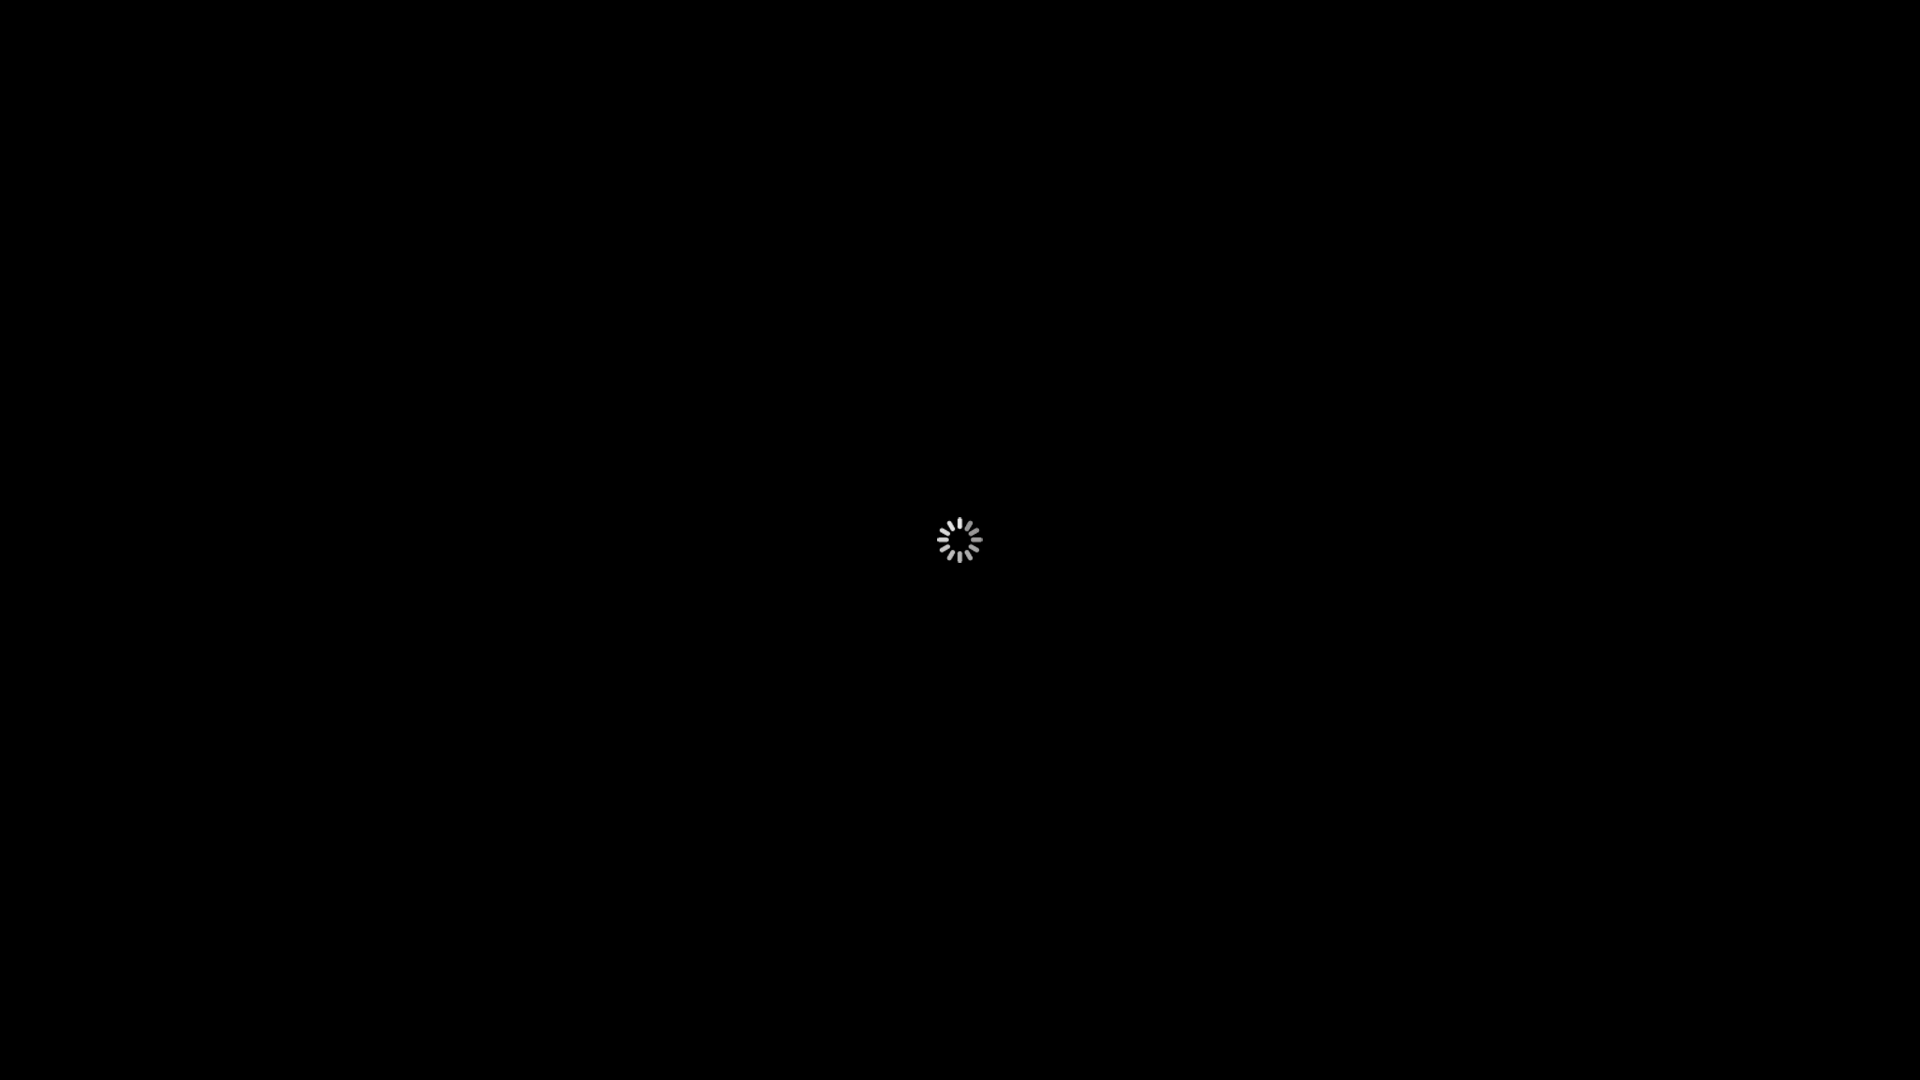 Wait for video to load